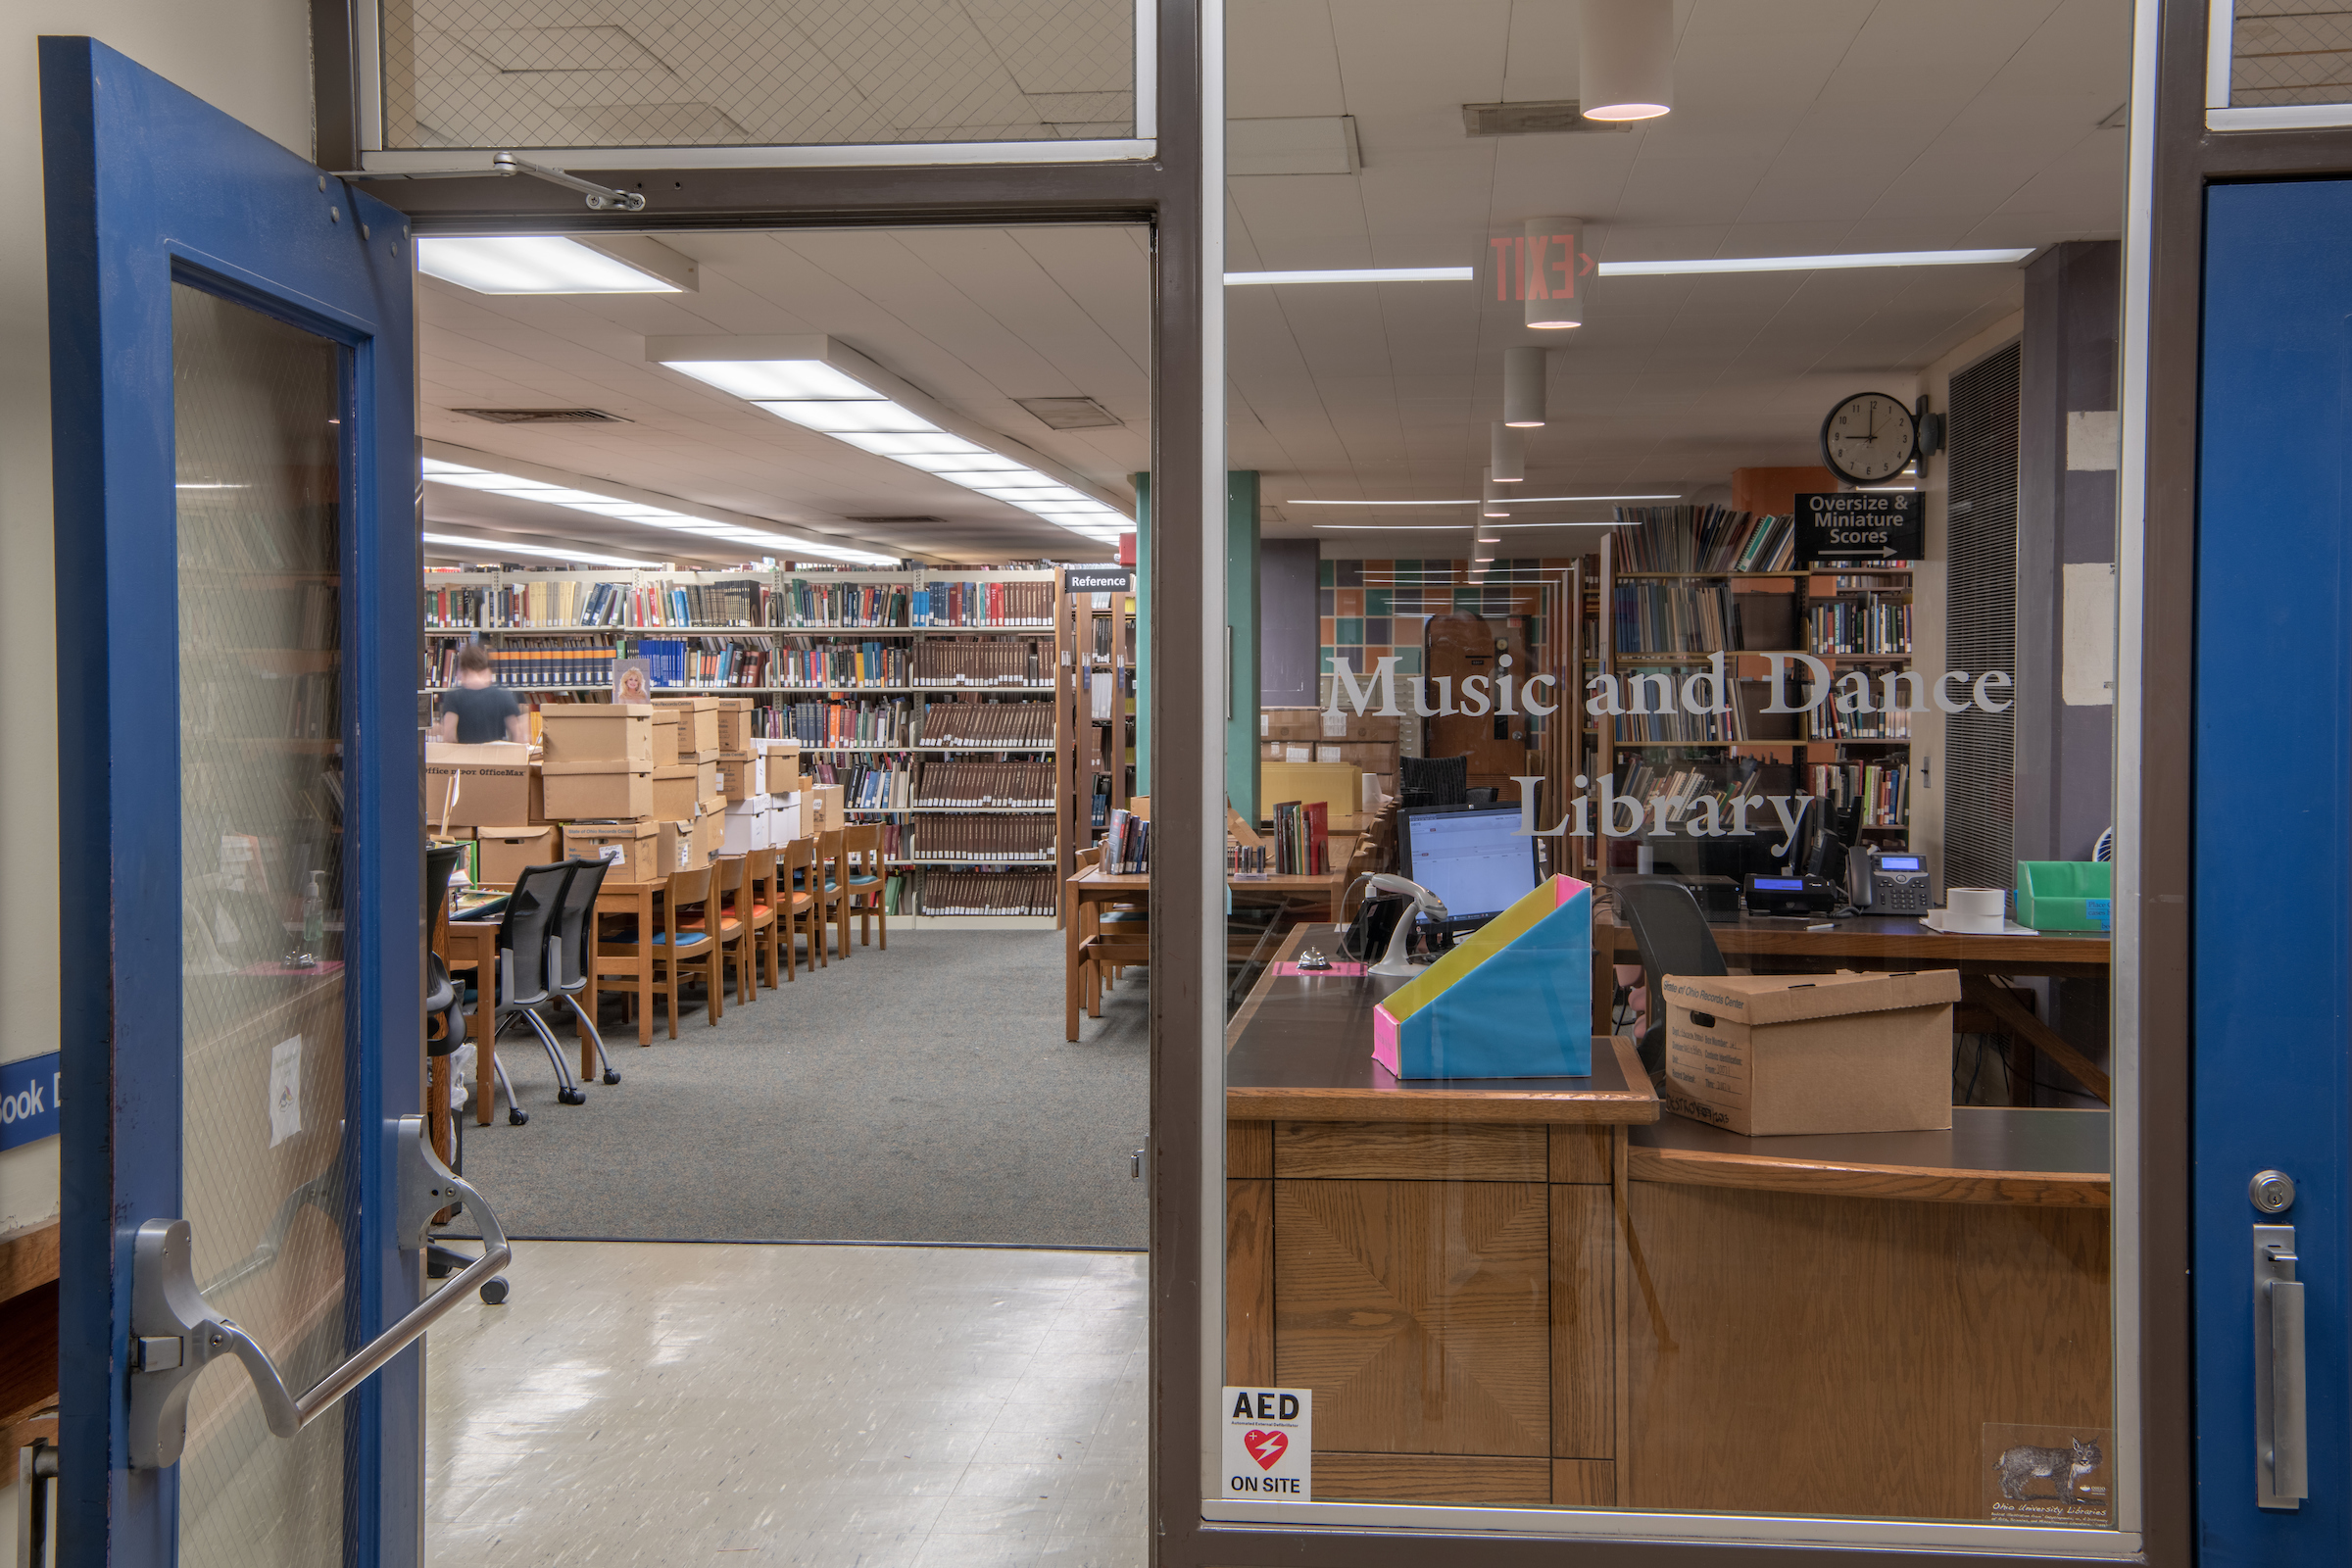 Music and Dance Library